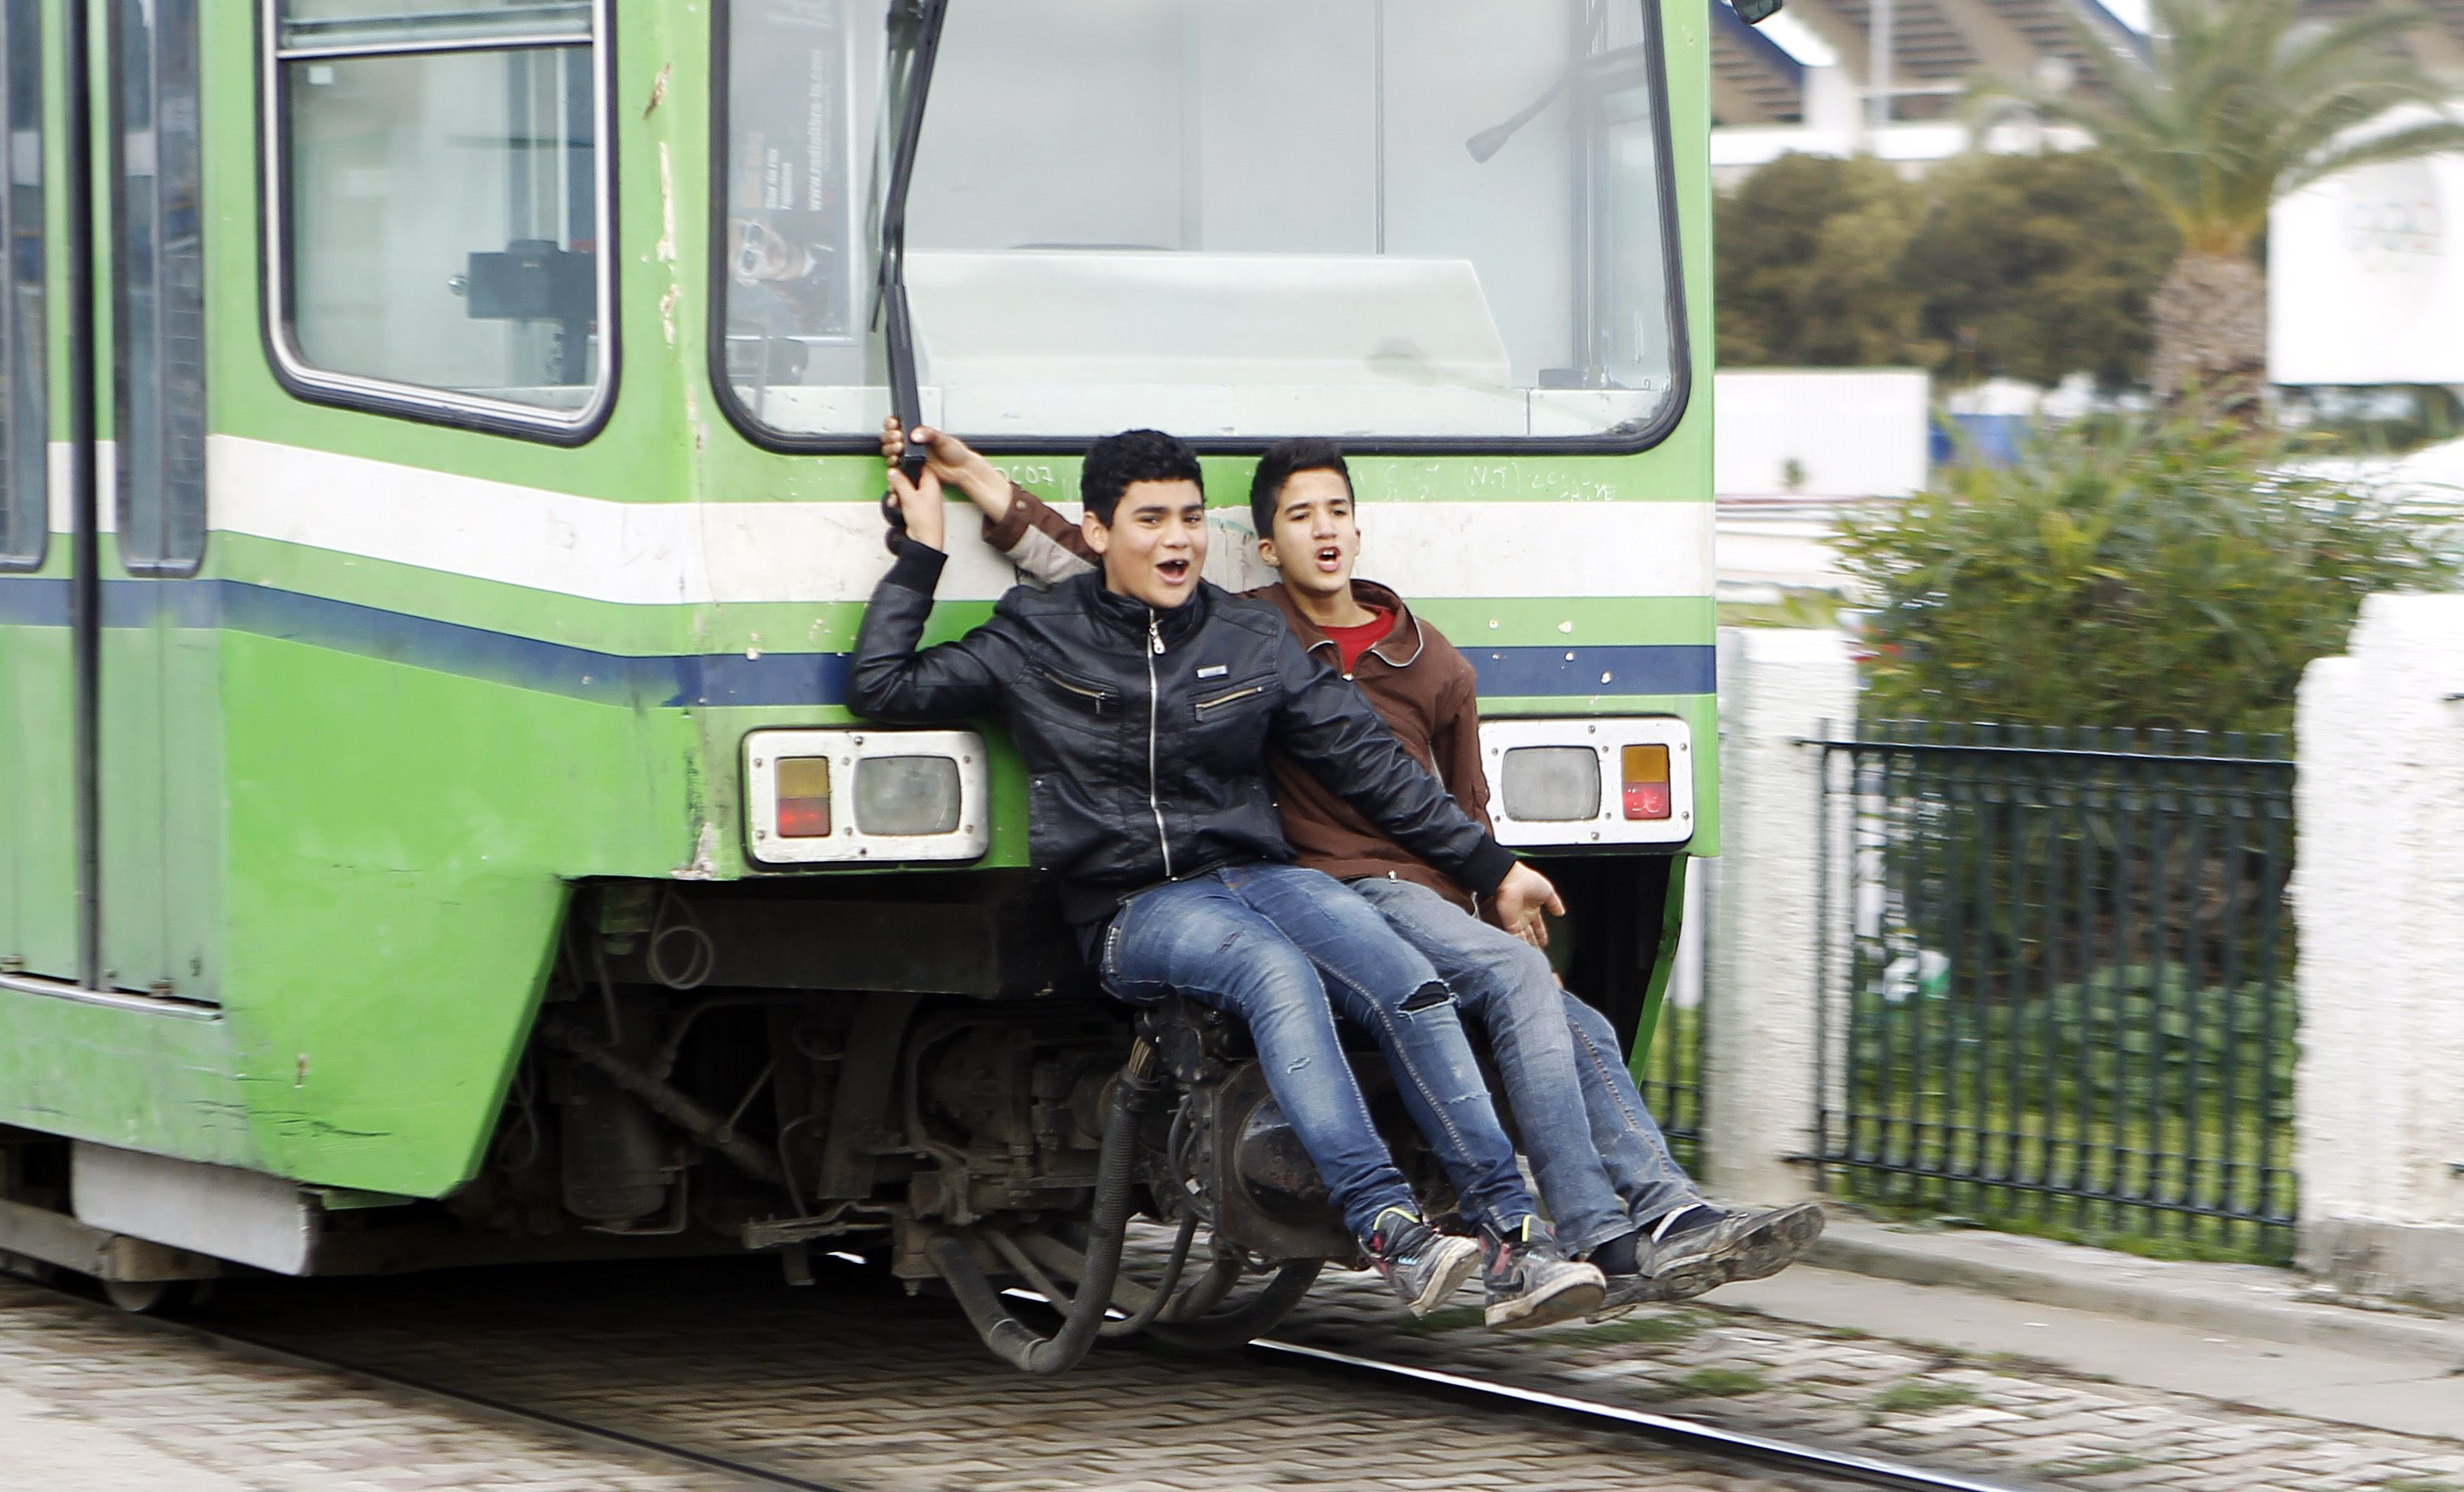 Boys ride on the back of a tram in Tunis February 5, 2013. REUTERS/ Zoubeir Souissi (TUNISIA - Tags: SOCIETY TRANSPORT) - RTR3DE31